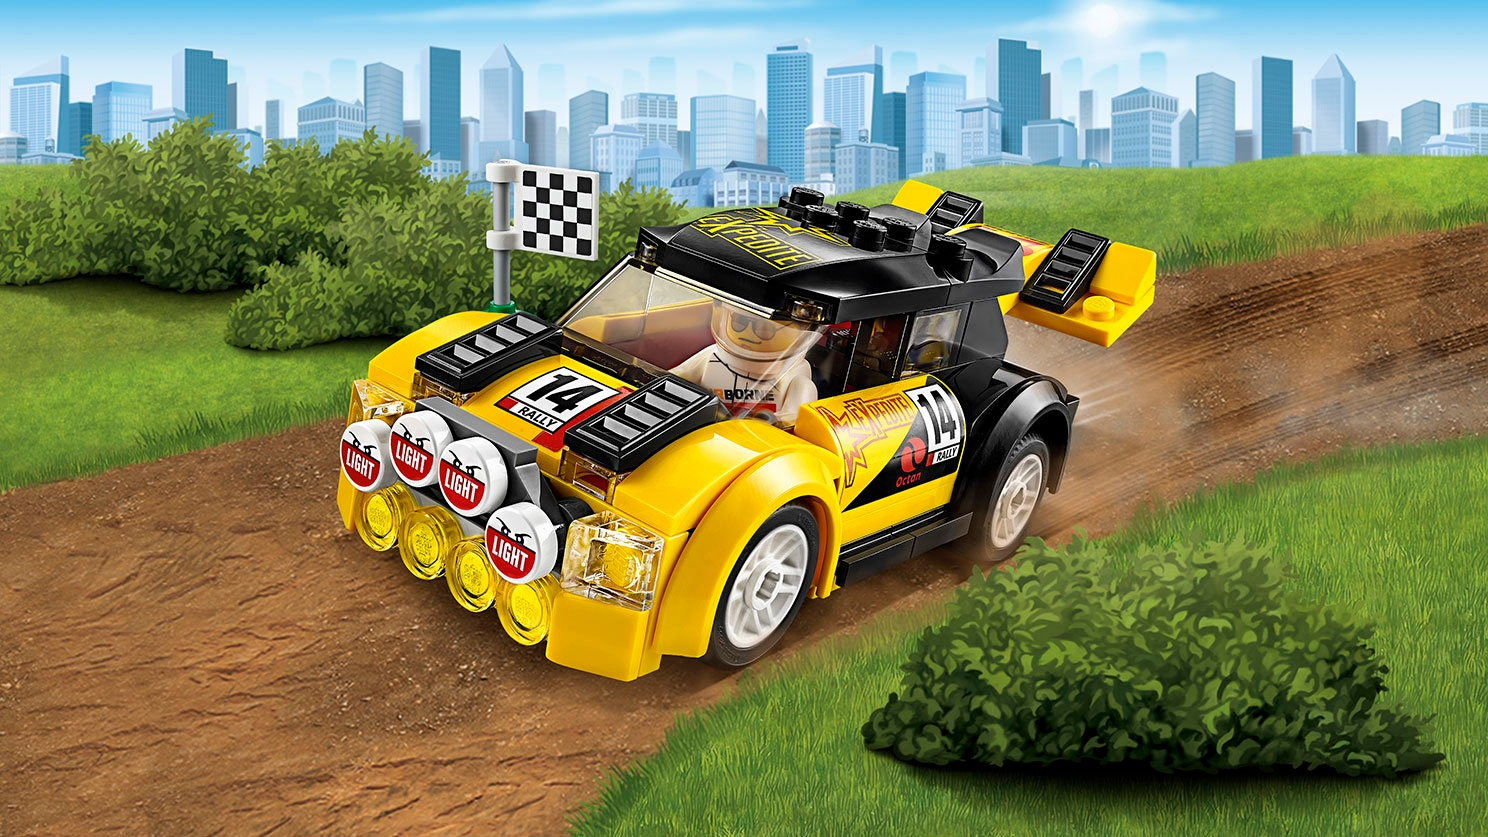 LEGO City Great Vehicles – Rally Car 60113